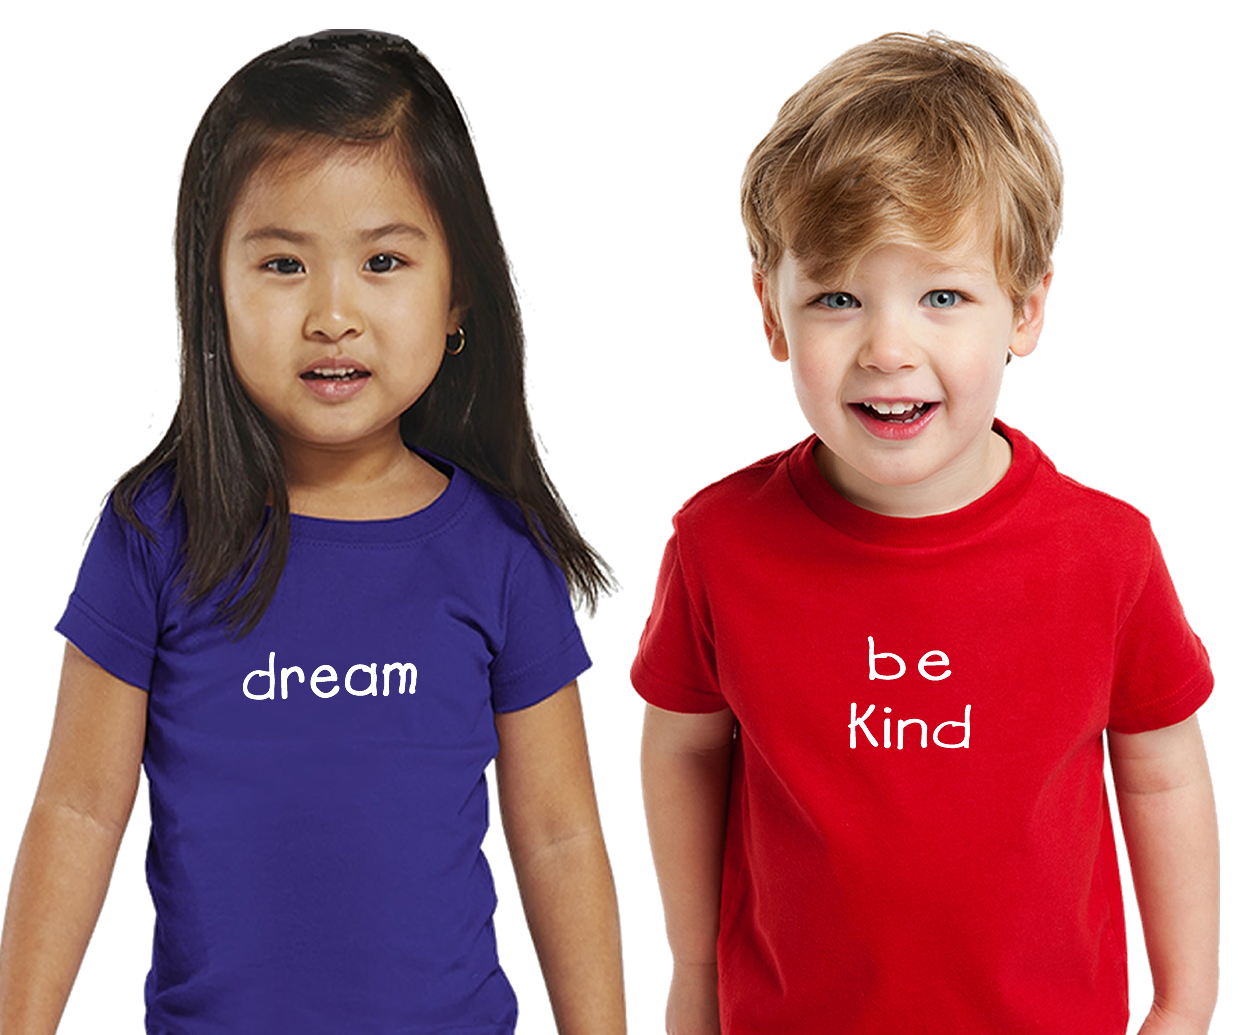 Two Toddlers with positive words on their T-shirts